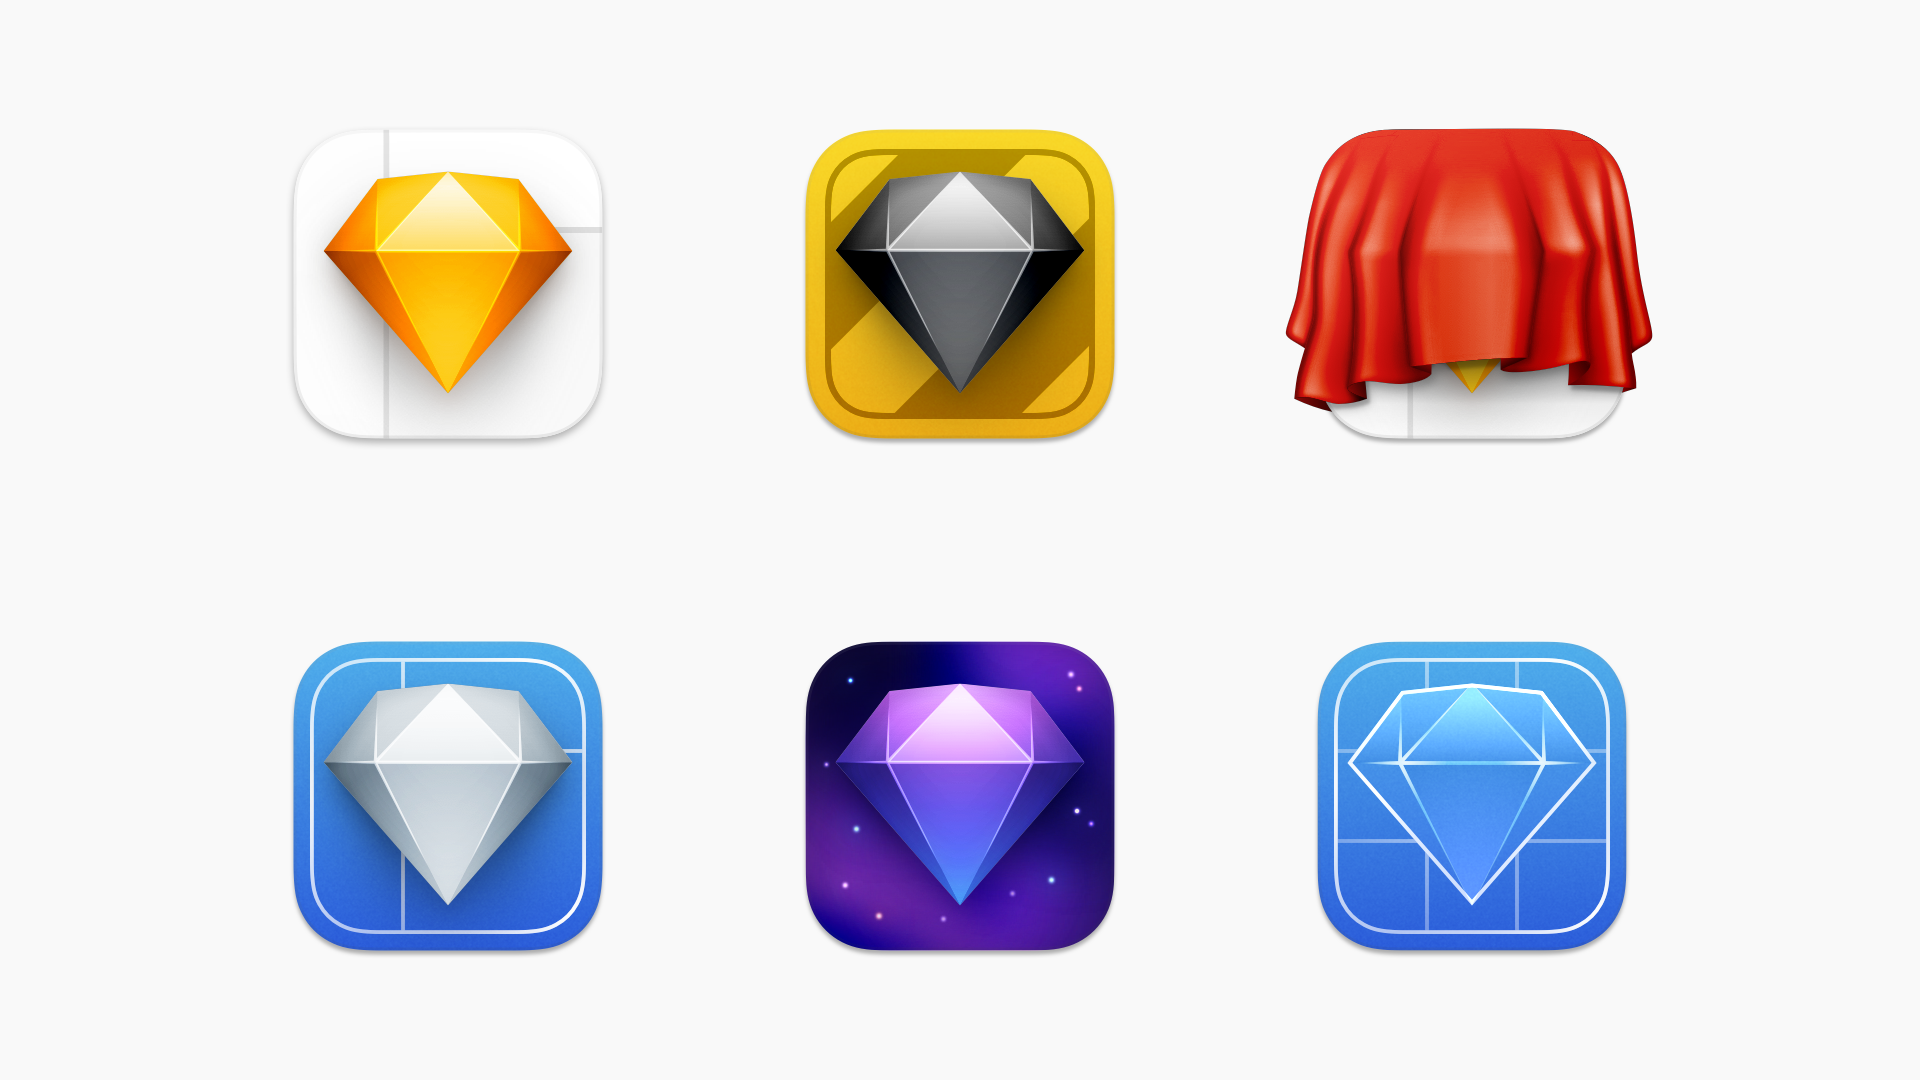 An image showing all six new Sketch icons in a grid.